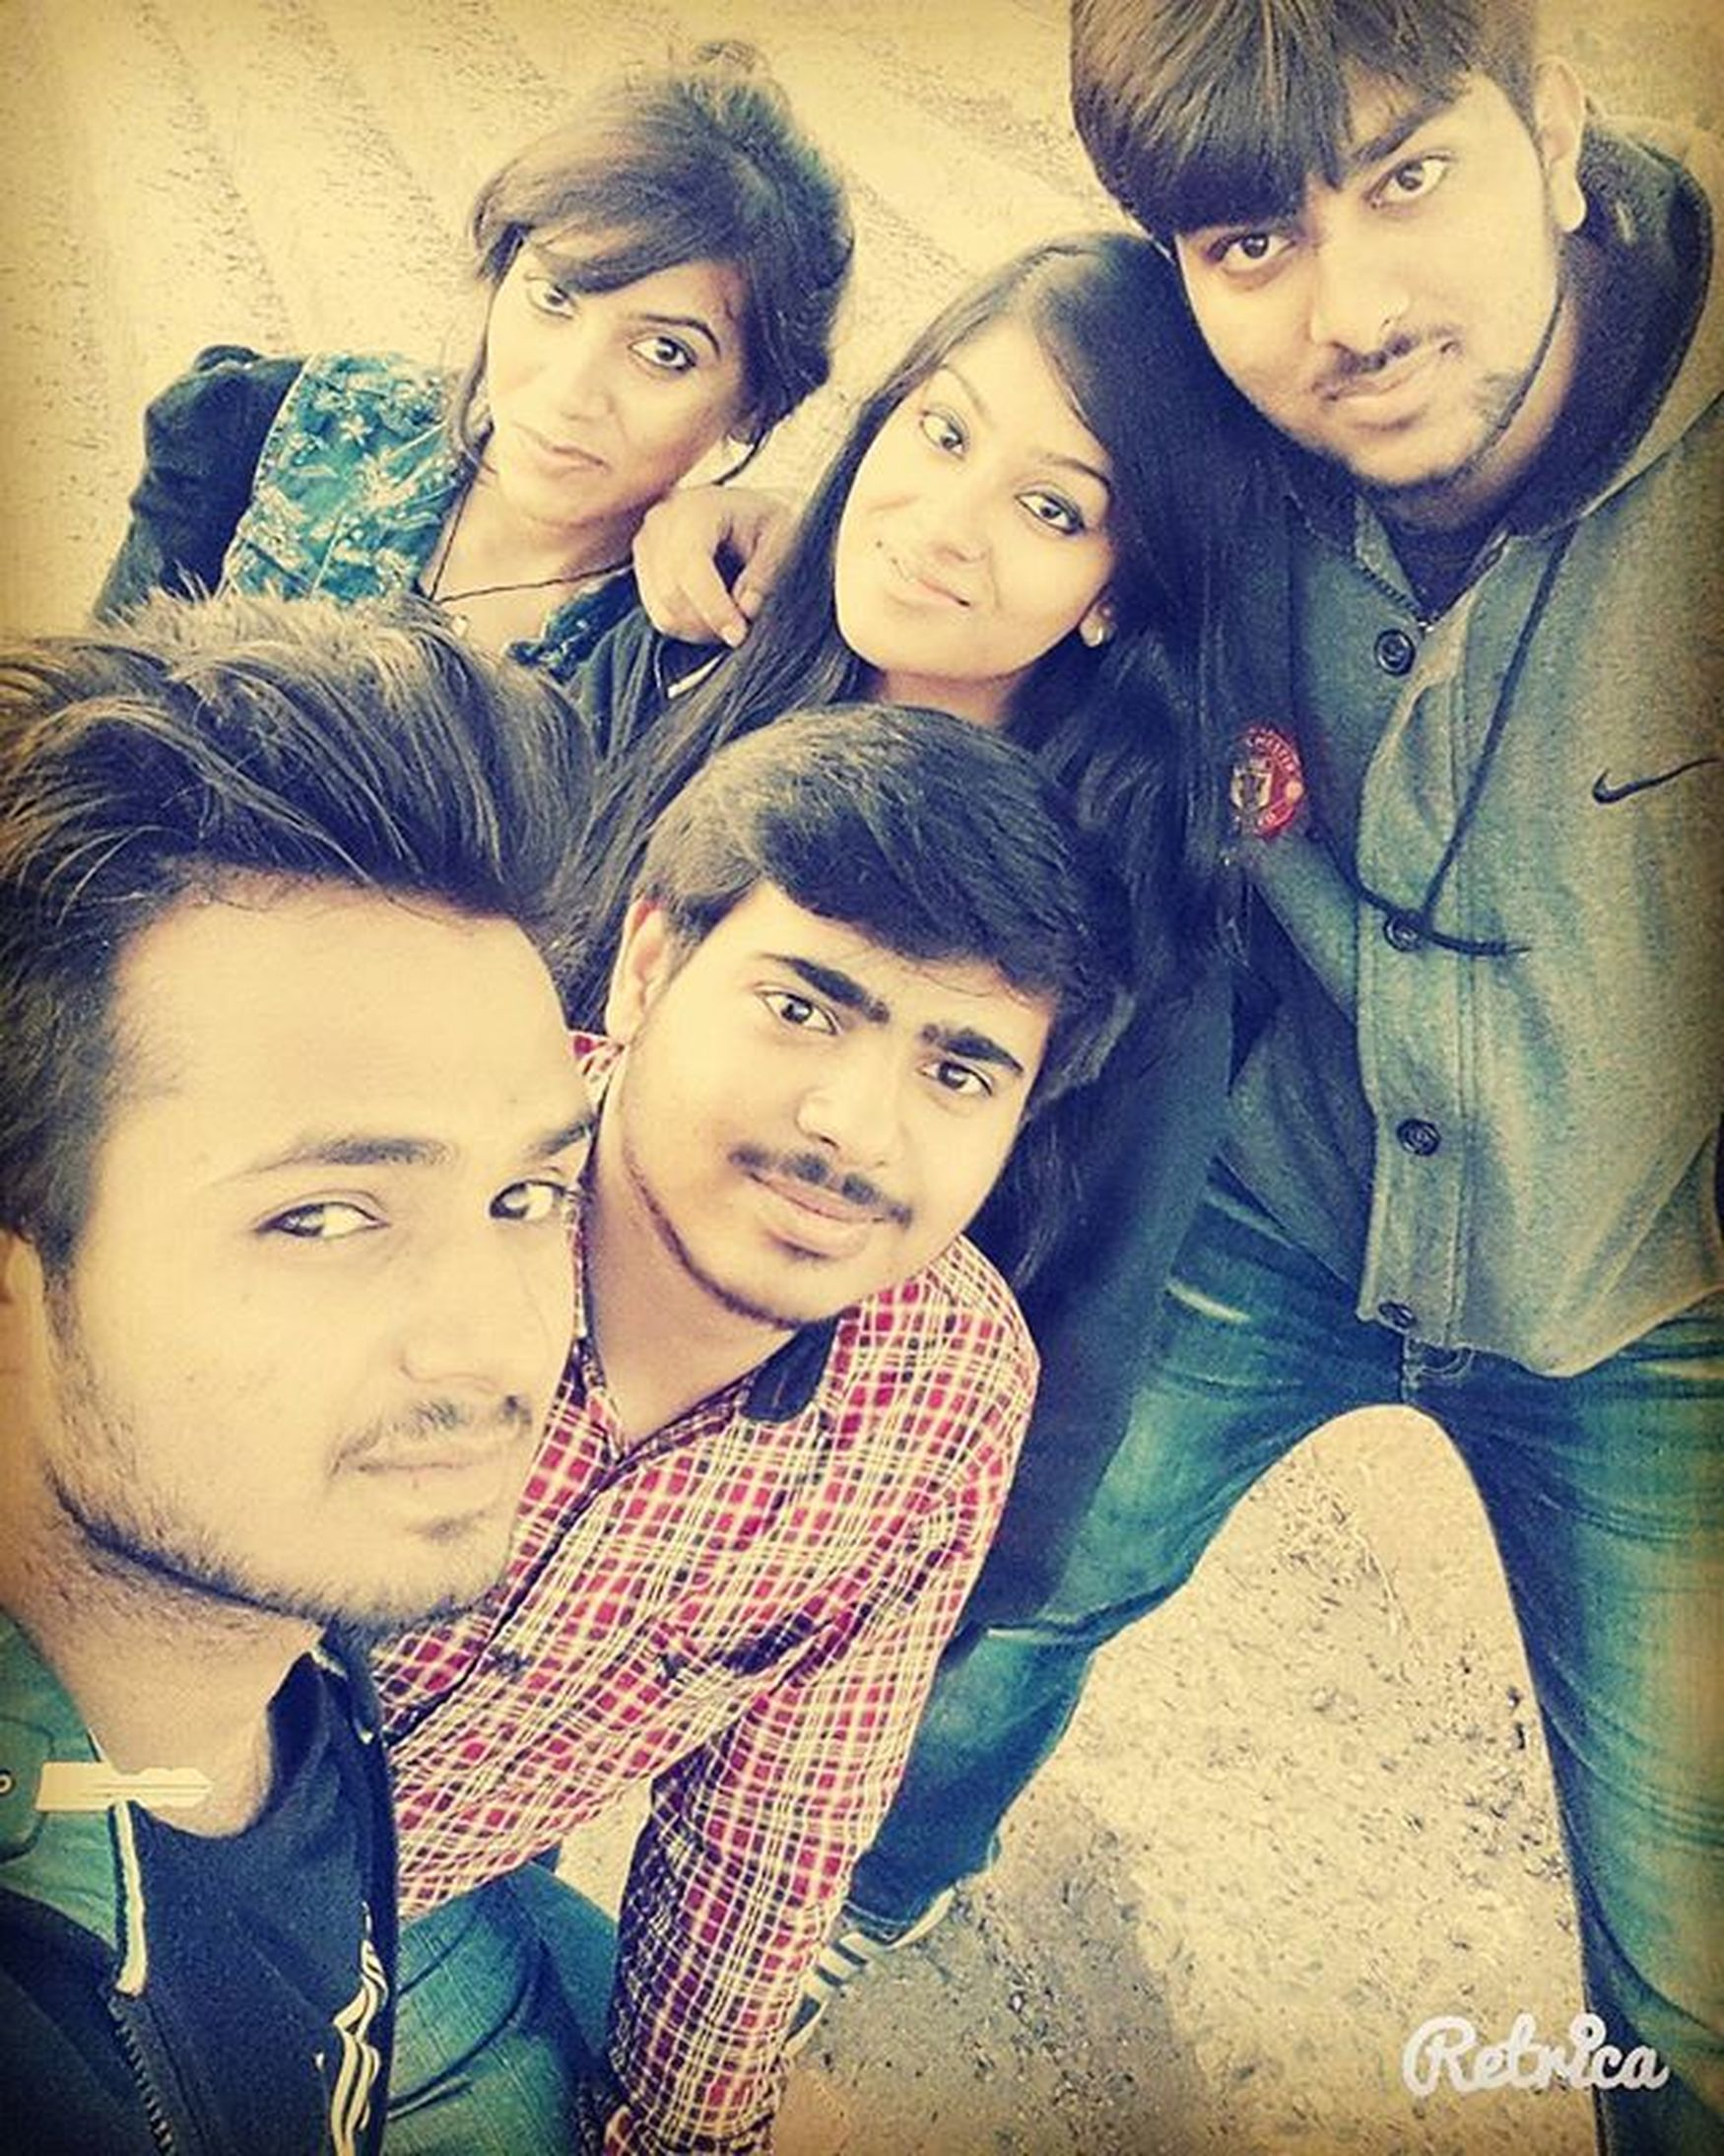 Reunion  With Besties At The Side Of Mountain Selfie Instapic Instagood Instalike Instagram Insta